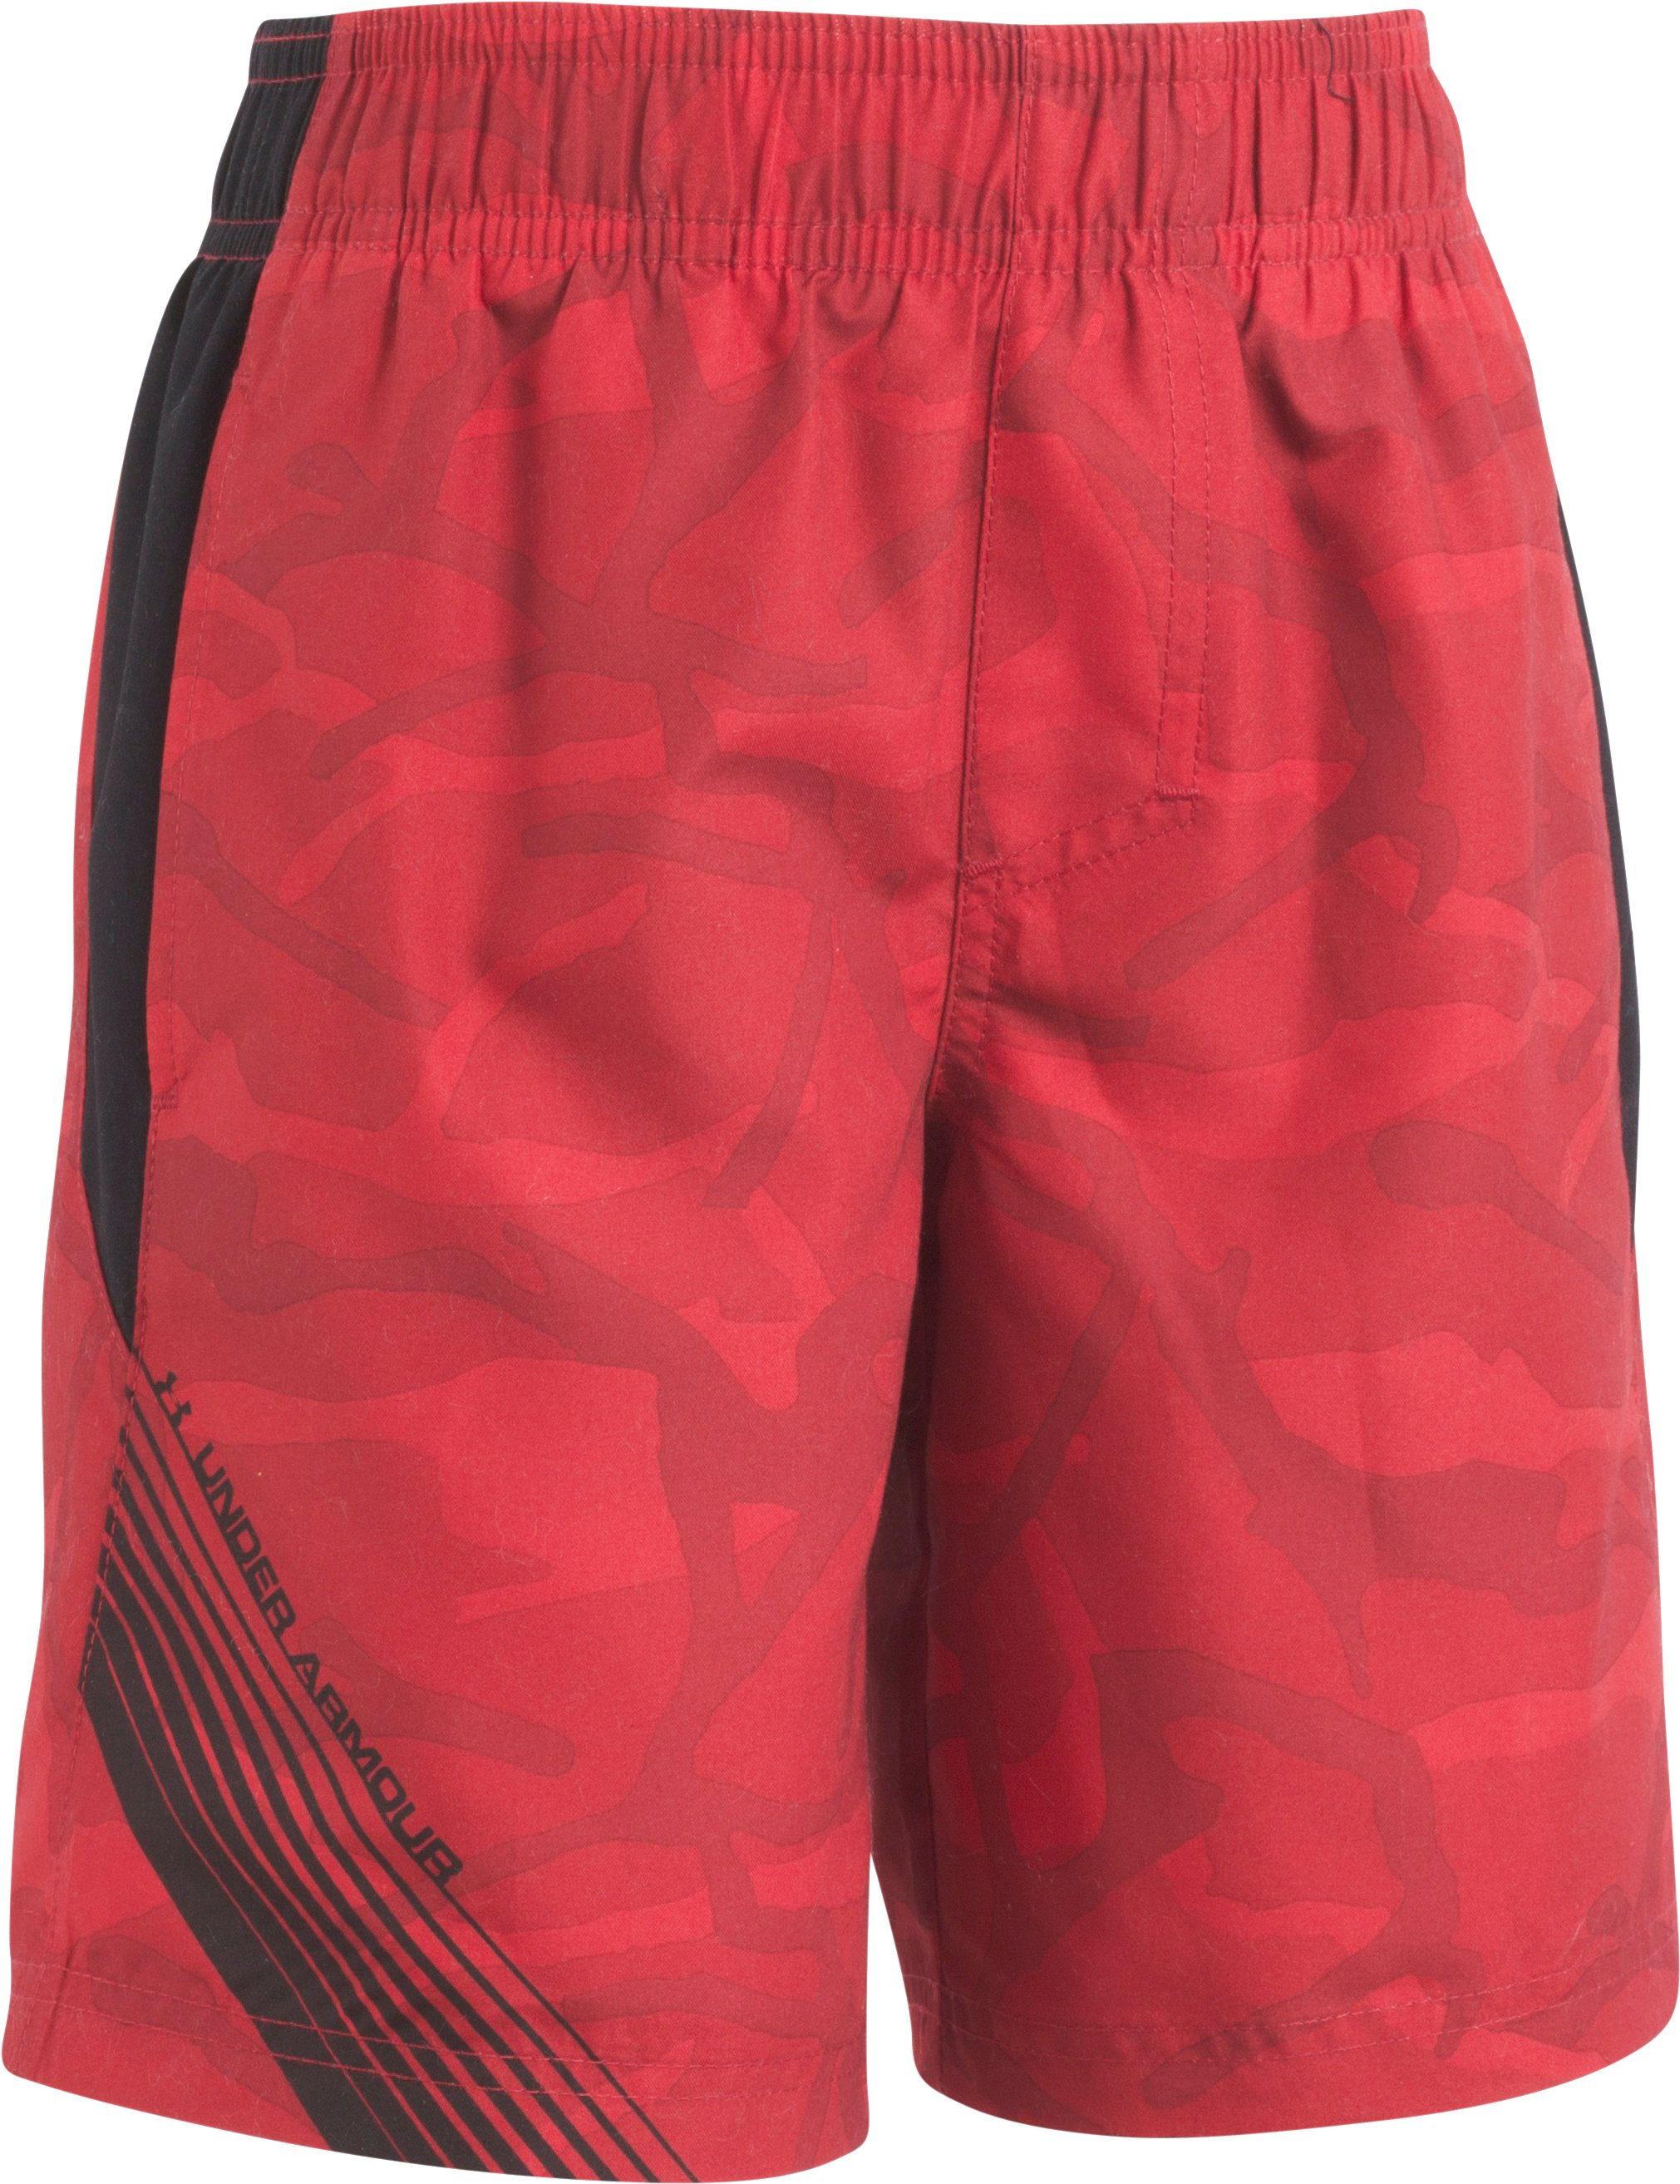 Boys' Pre-School UA Volley Shorts, Red